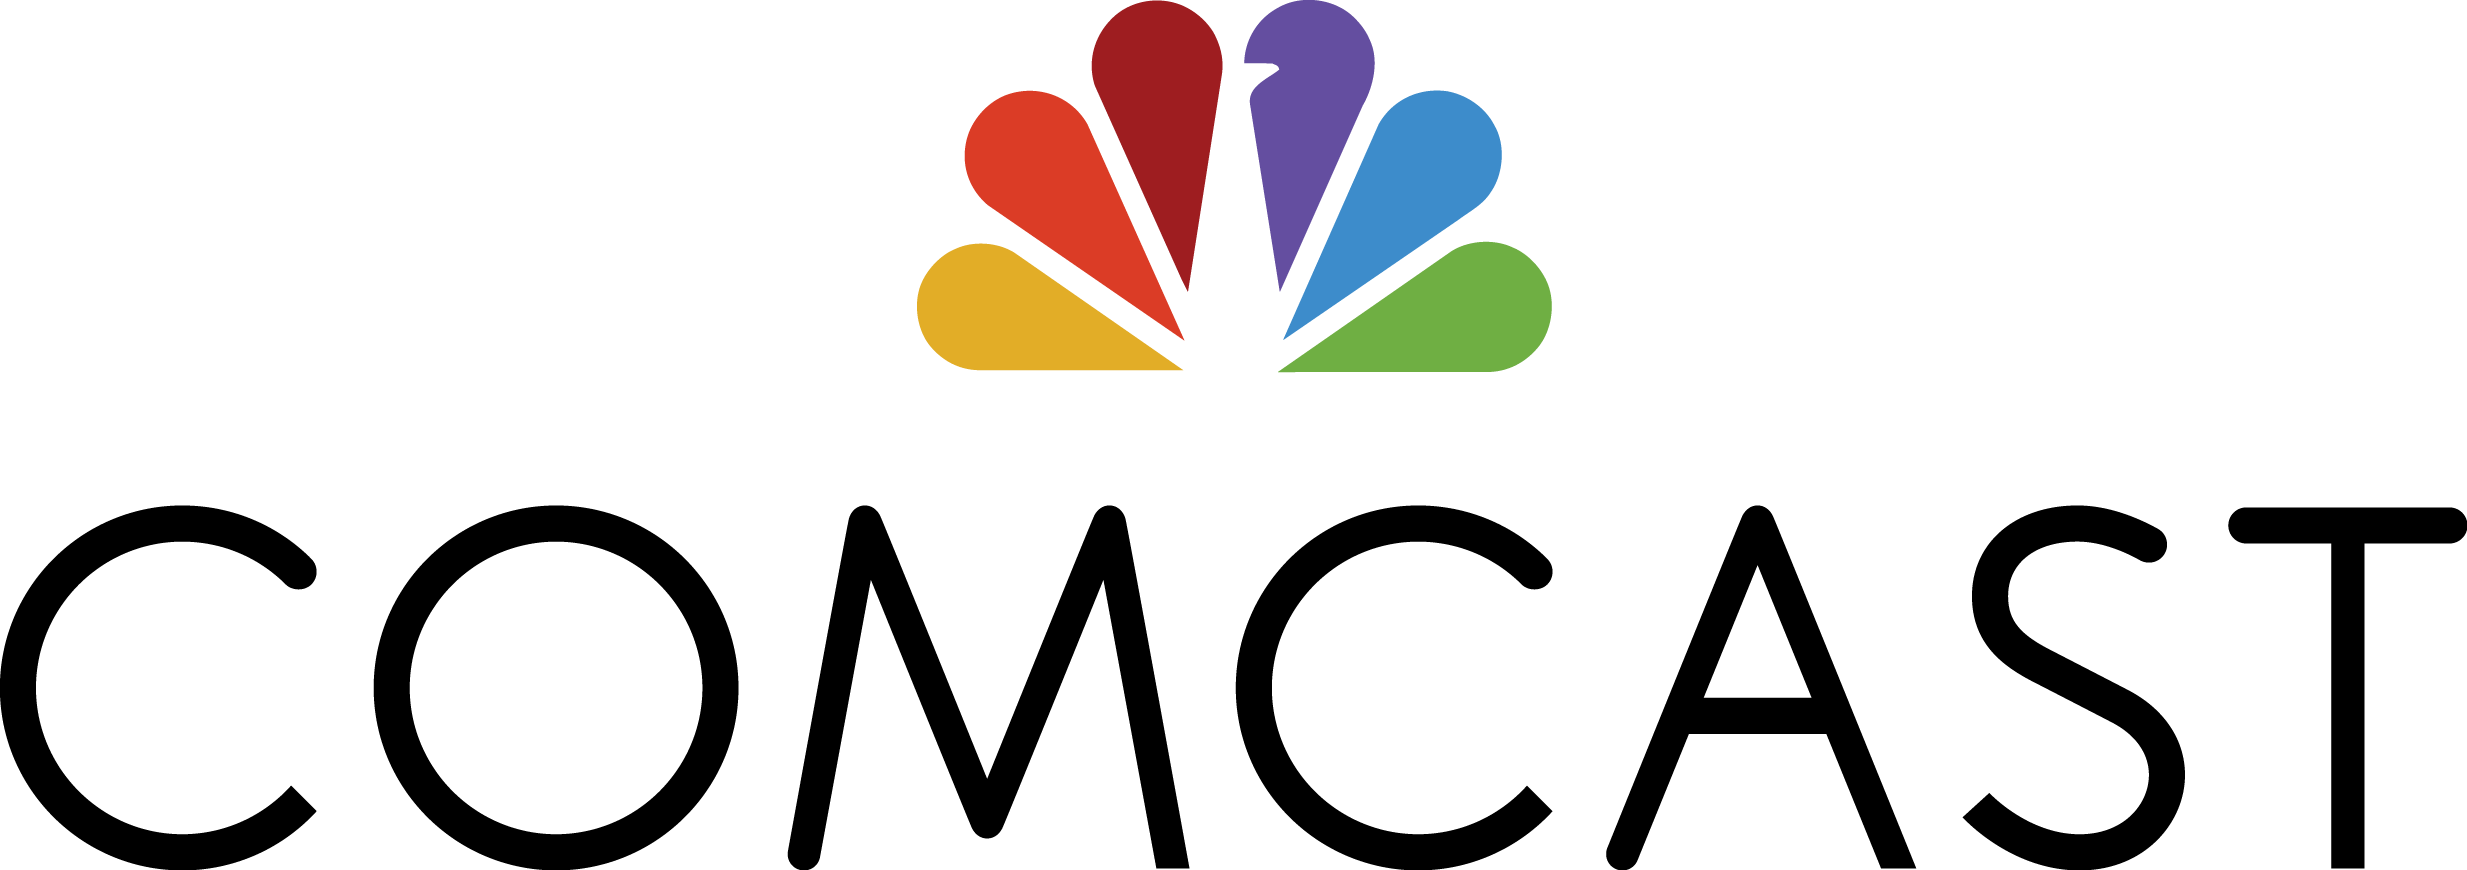 Customer Satisfaction Survey Reveals Comcast And Time Warner Cable